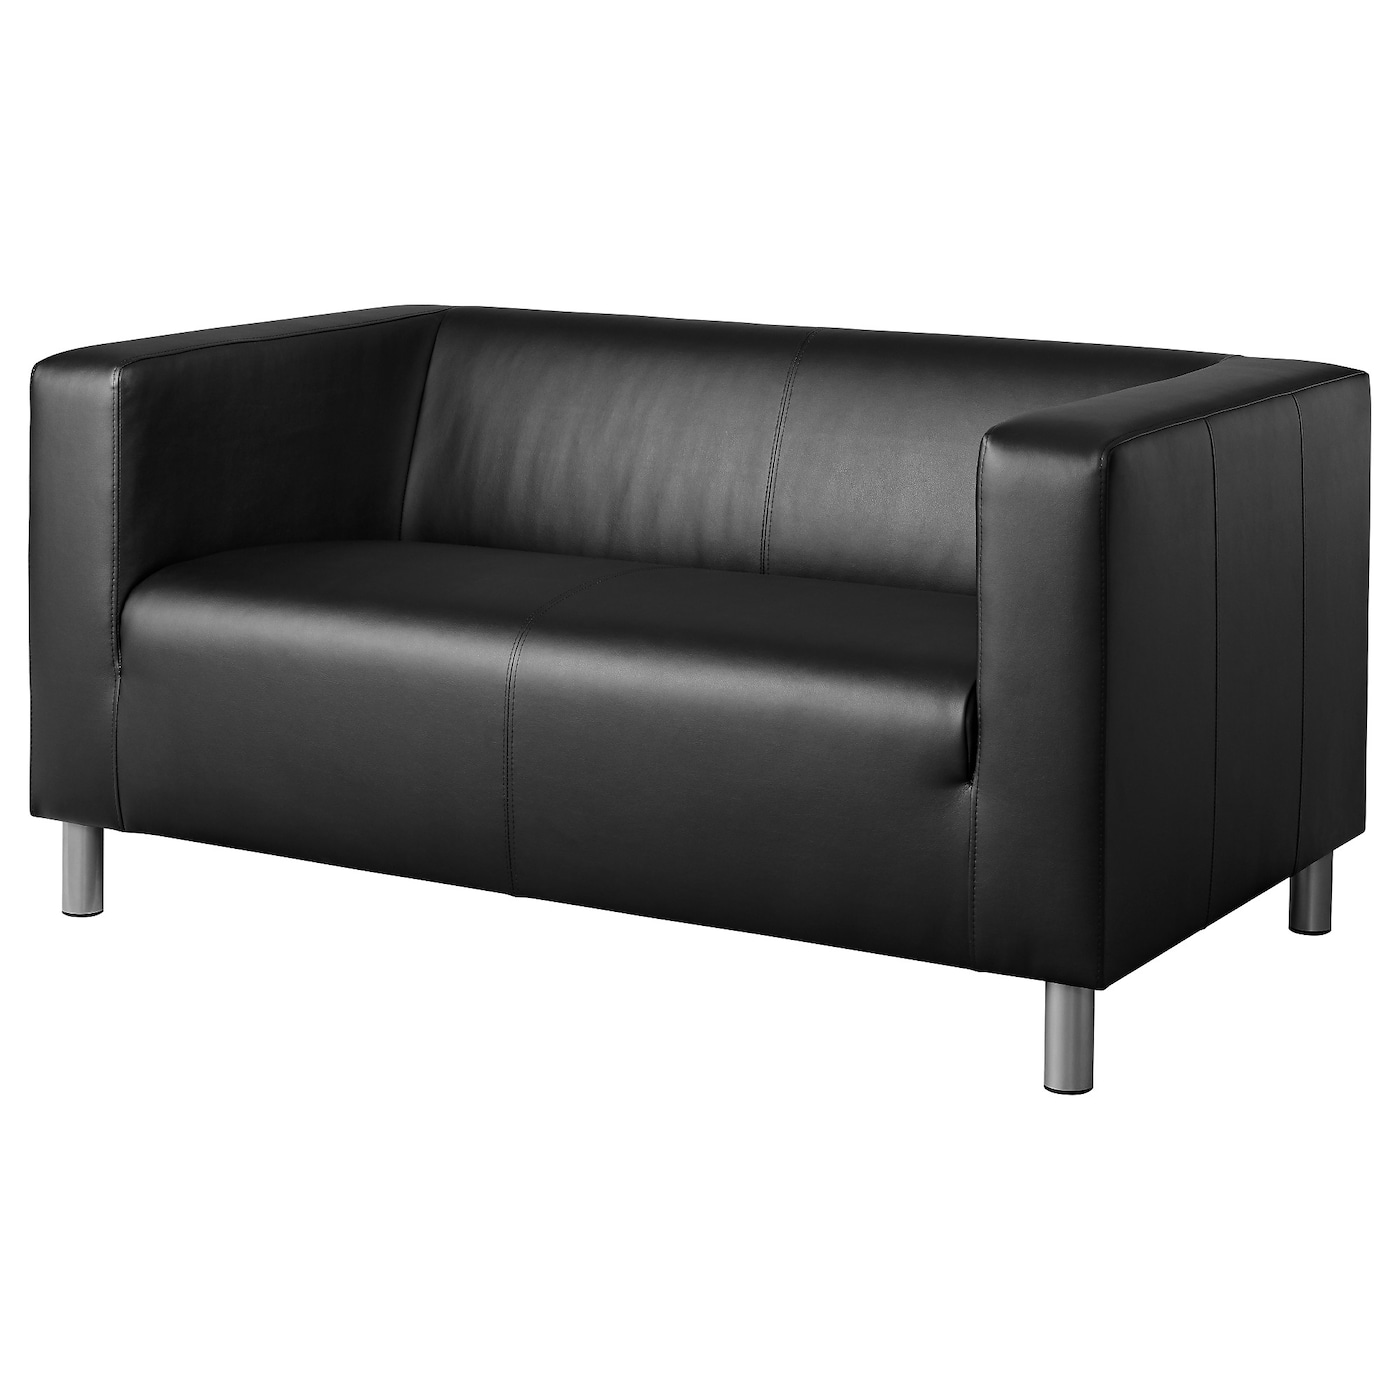 Sofa 2 Meter Used Moroccan Sofa Salon Meter U Inch For The Height